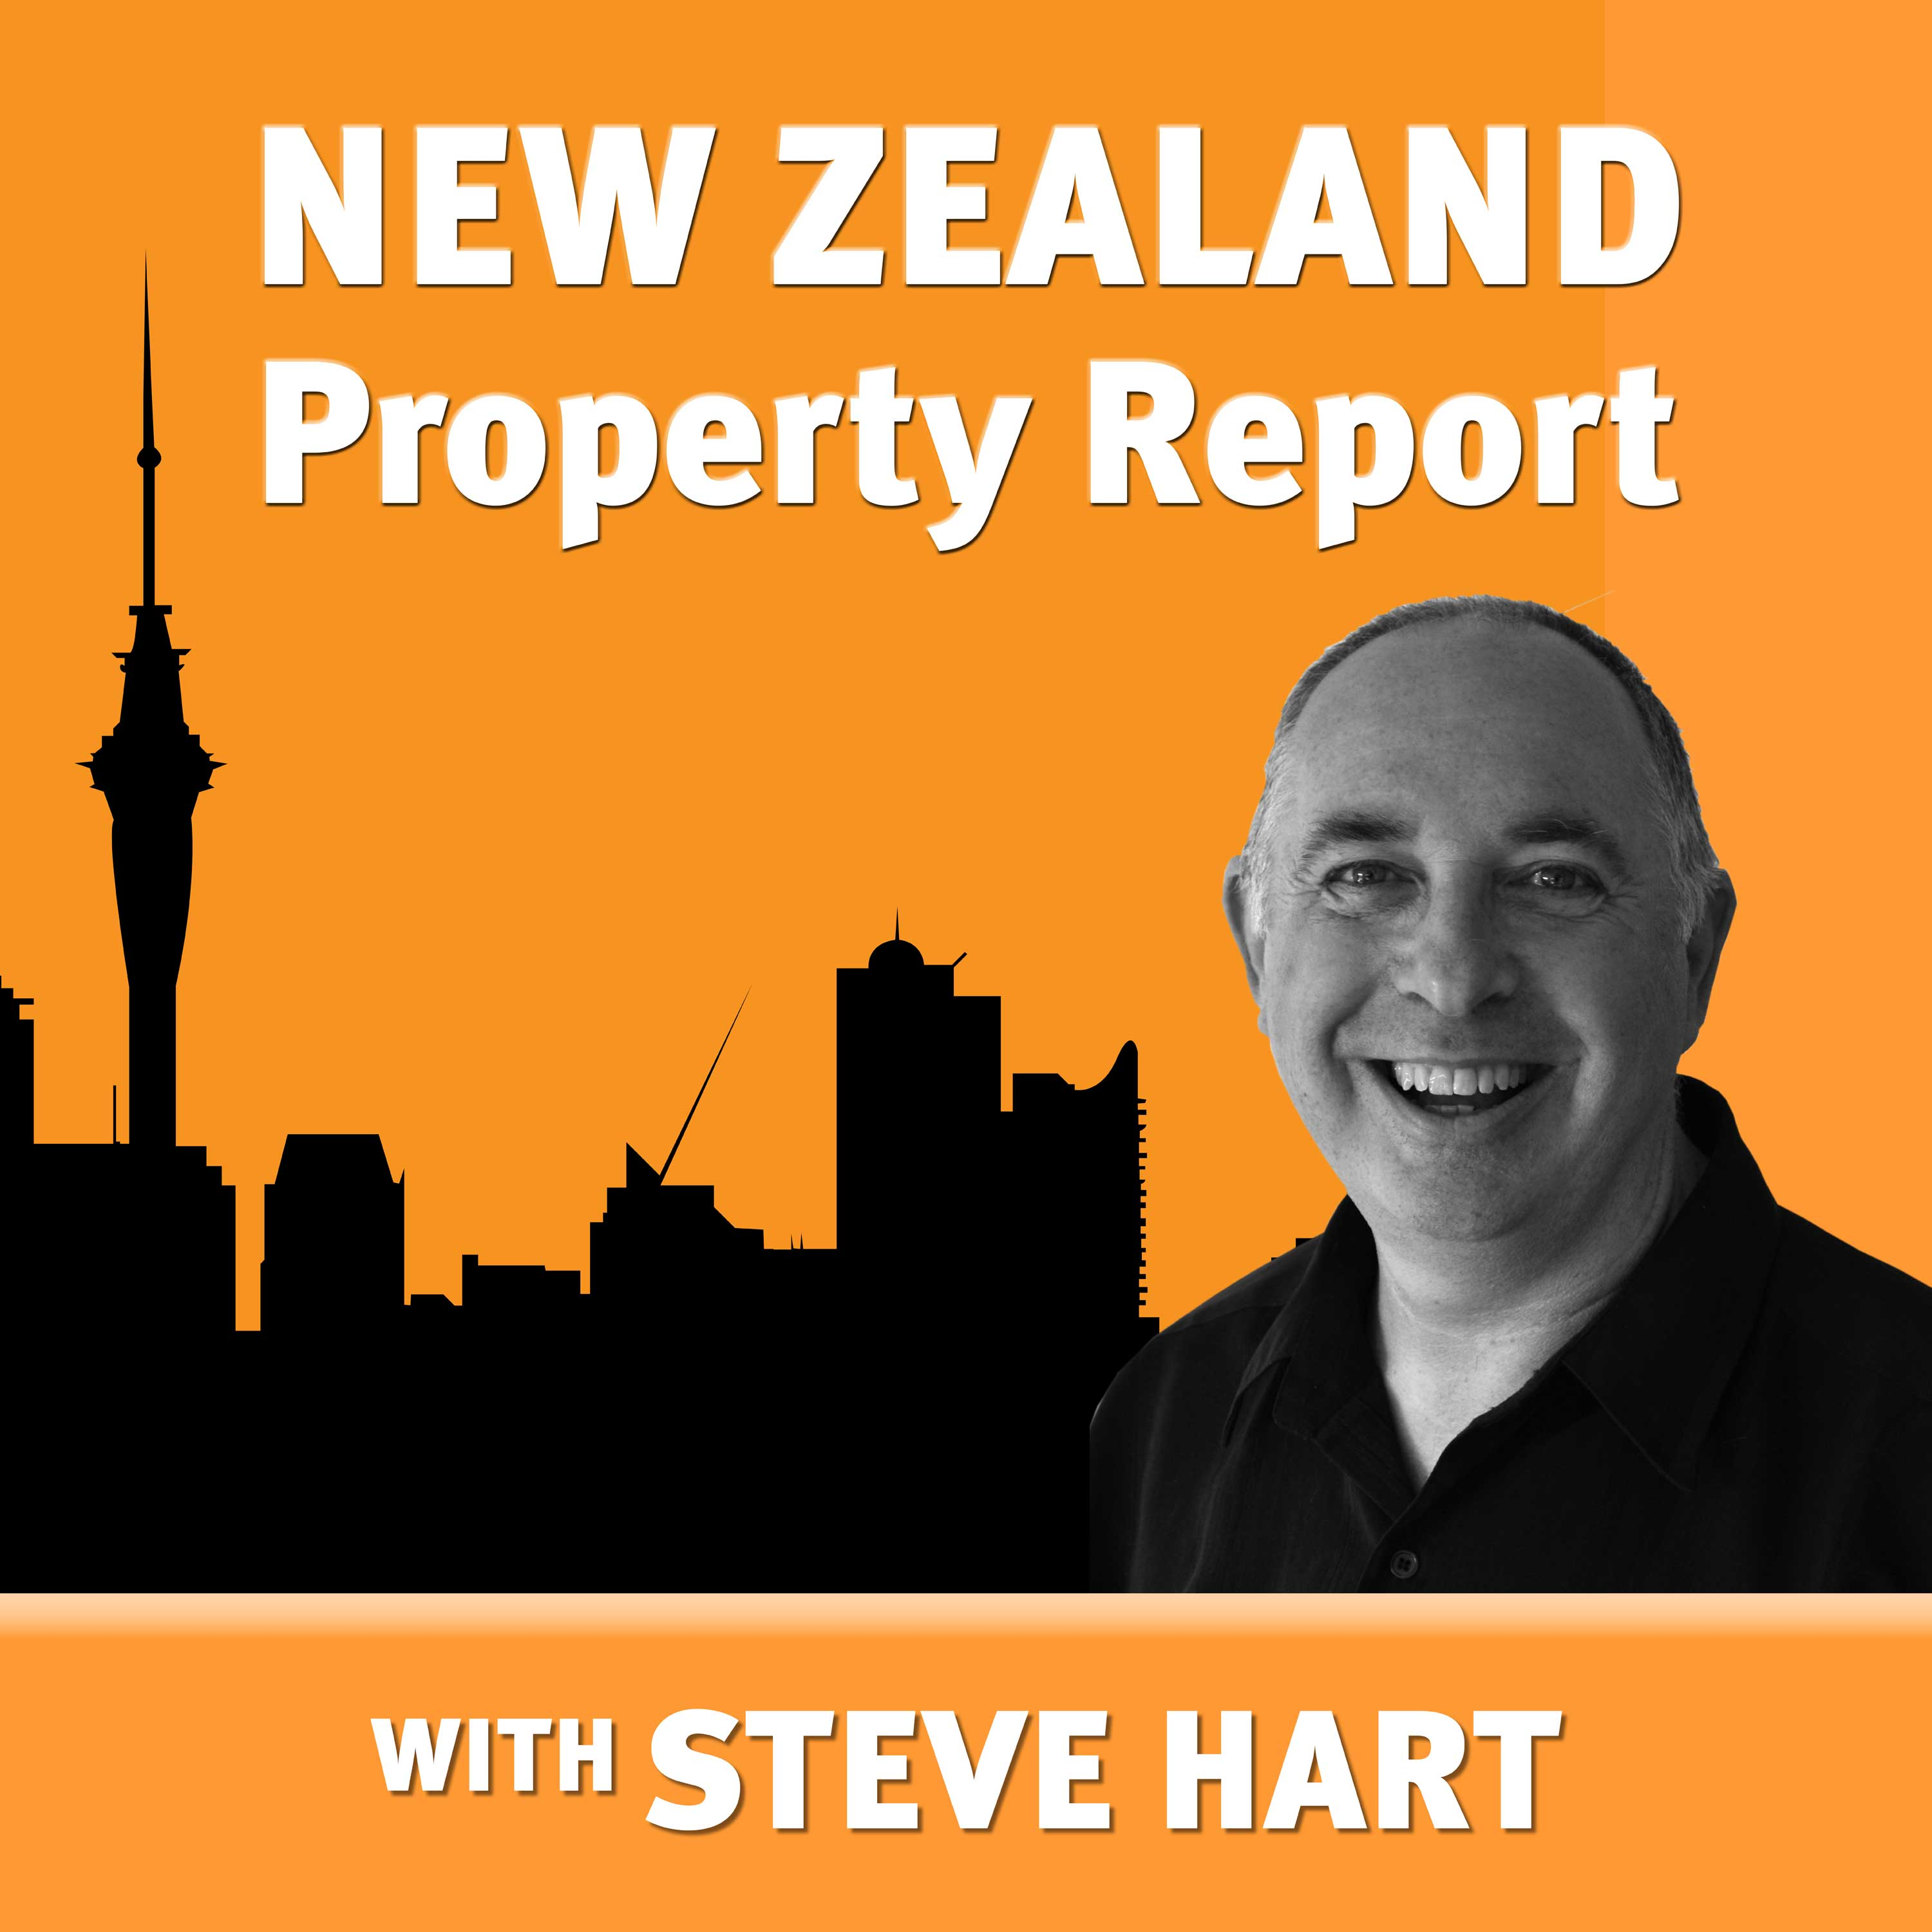 The New Zealand Property Report